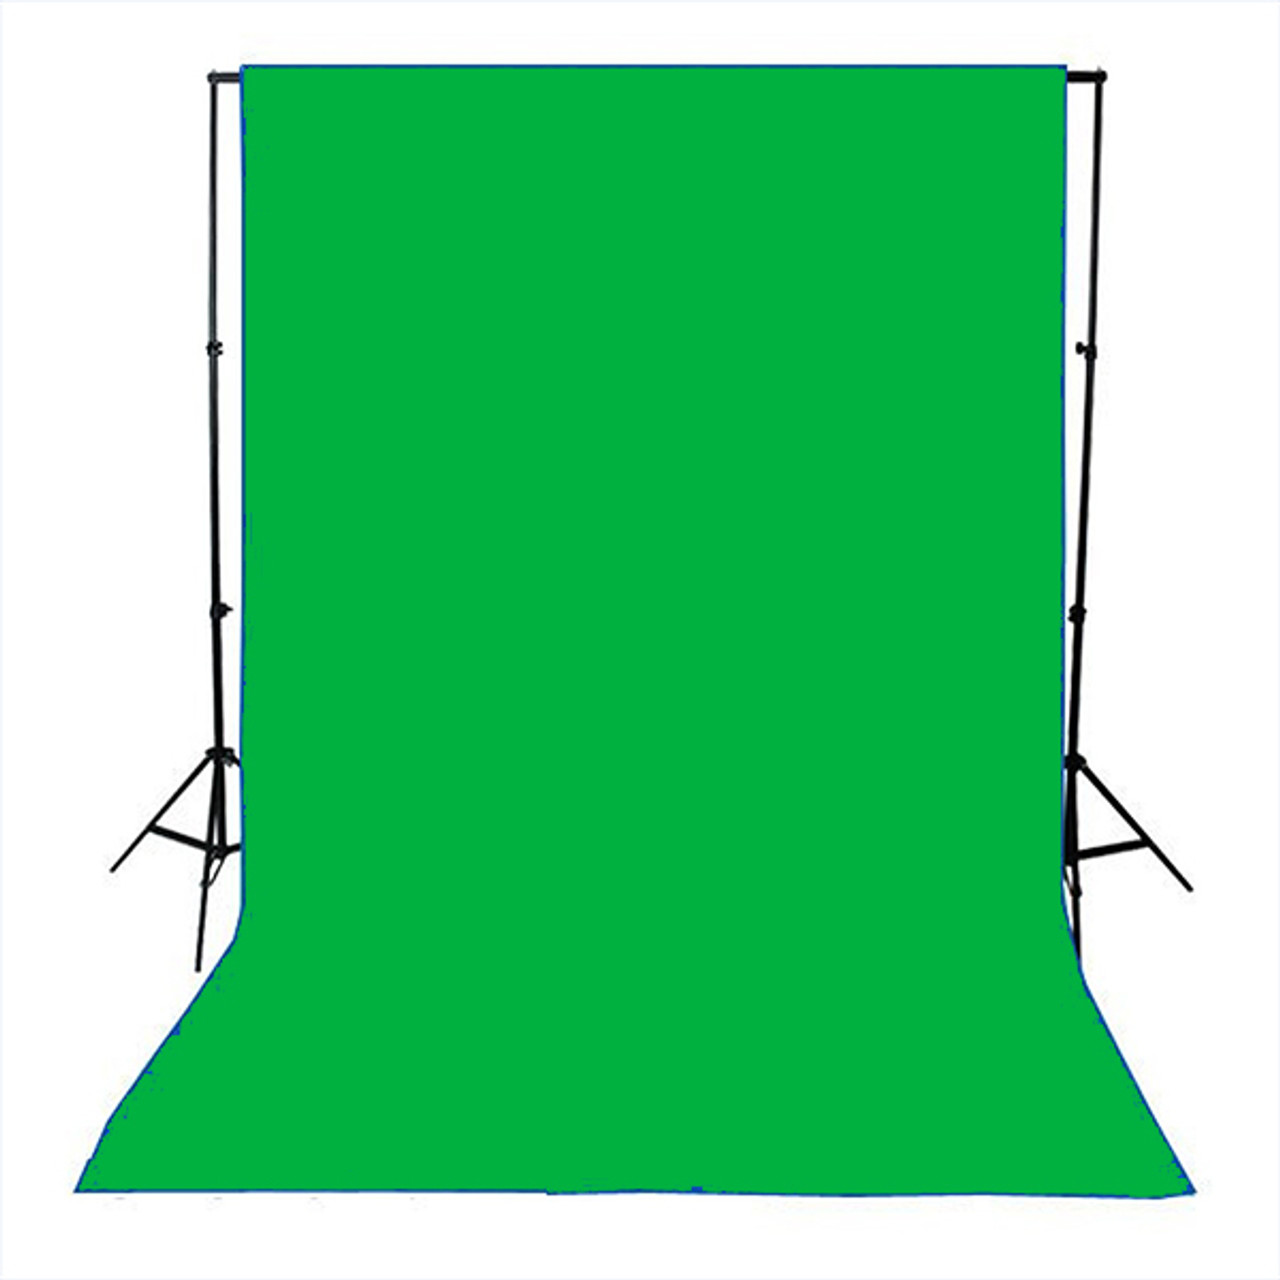 Chroma Key Green Commando Cloth / Duvetyne Flame Retardant